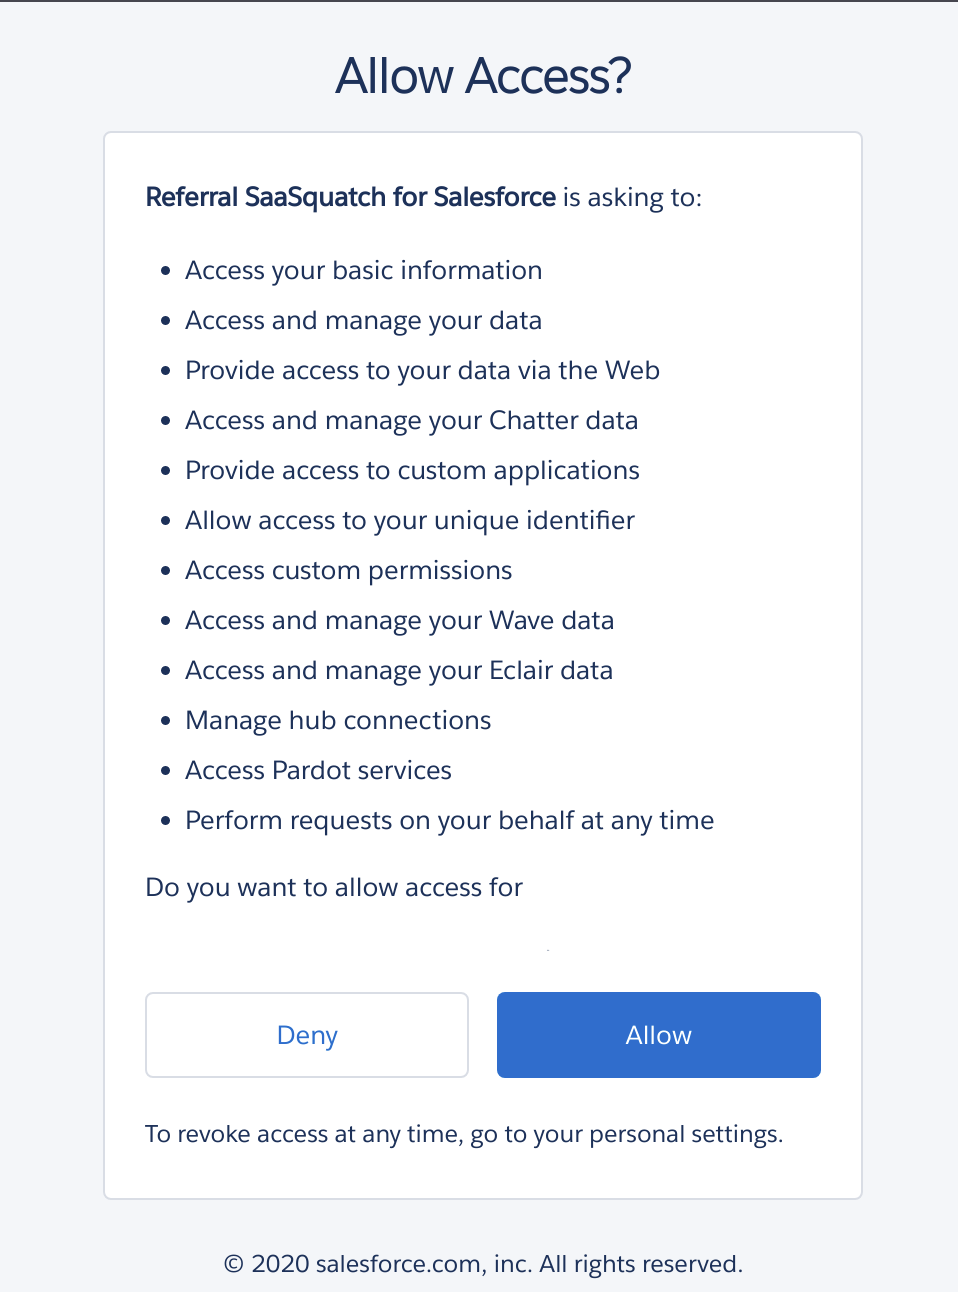 Allow the SaaSquatch Salesforce application access to your Salesforce organization